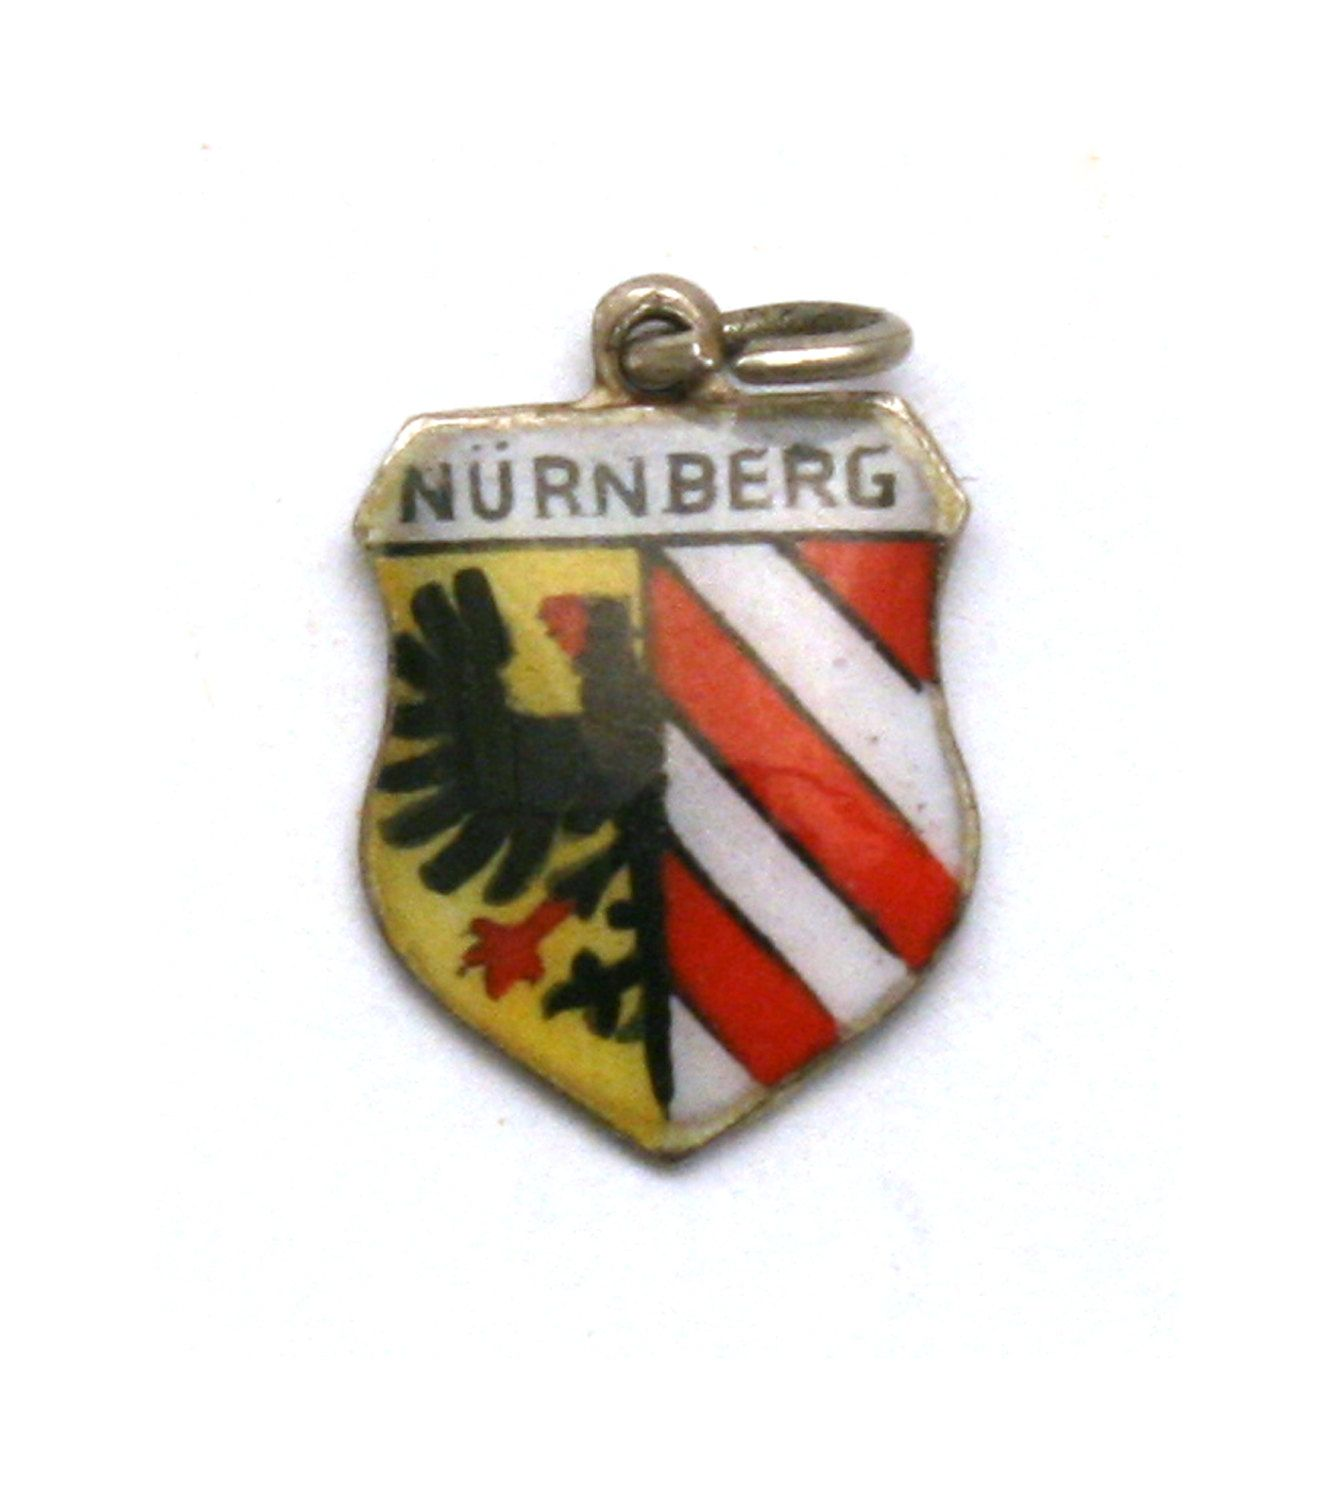 Nurnberg Germany Coat of Arms Travel Shield Vintage 800 Silver Enamel Bracelet Charm Nuremberg by SterlingRevival on Etsy